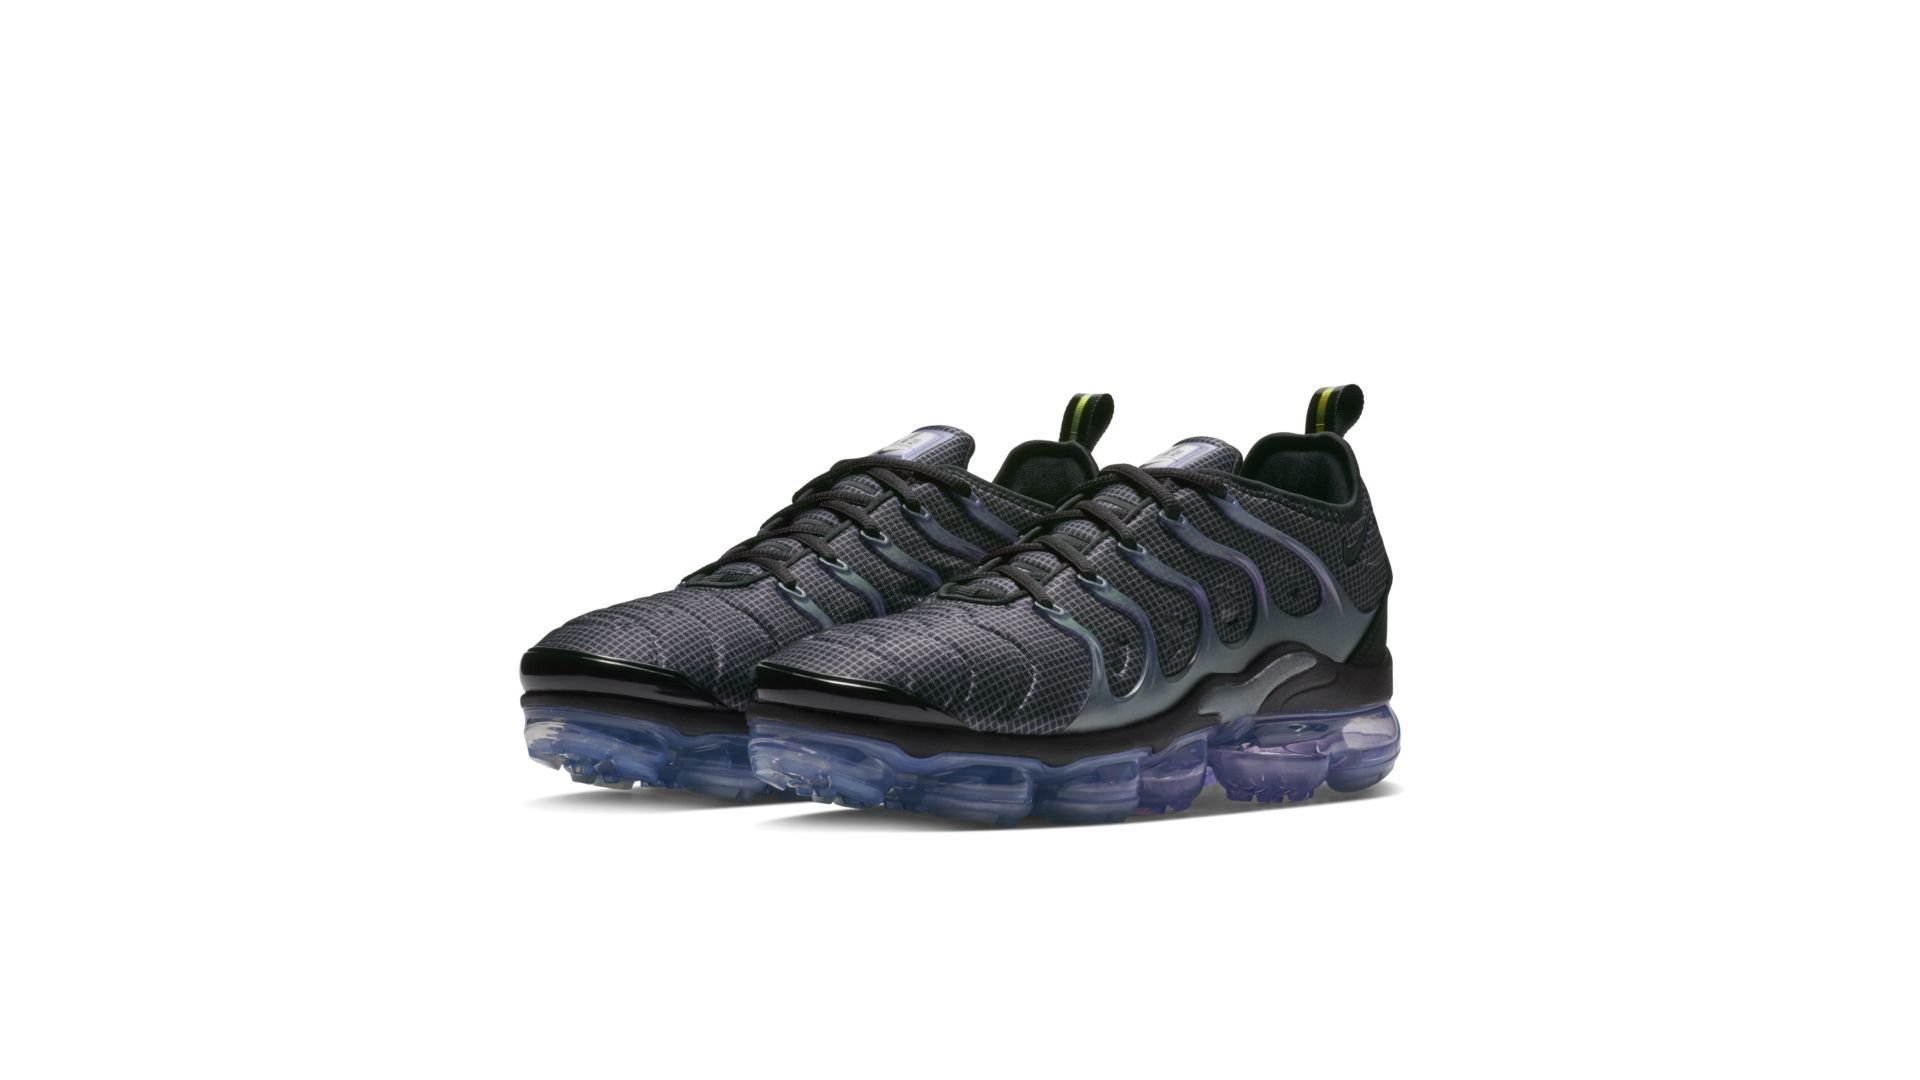 NIKE AIR VAPORMAX PLUS 924453-014